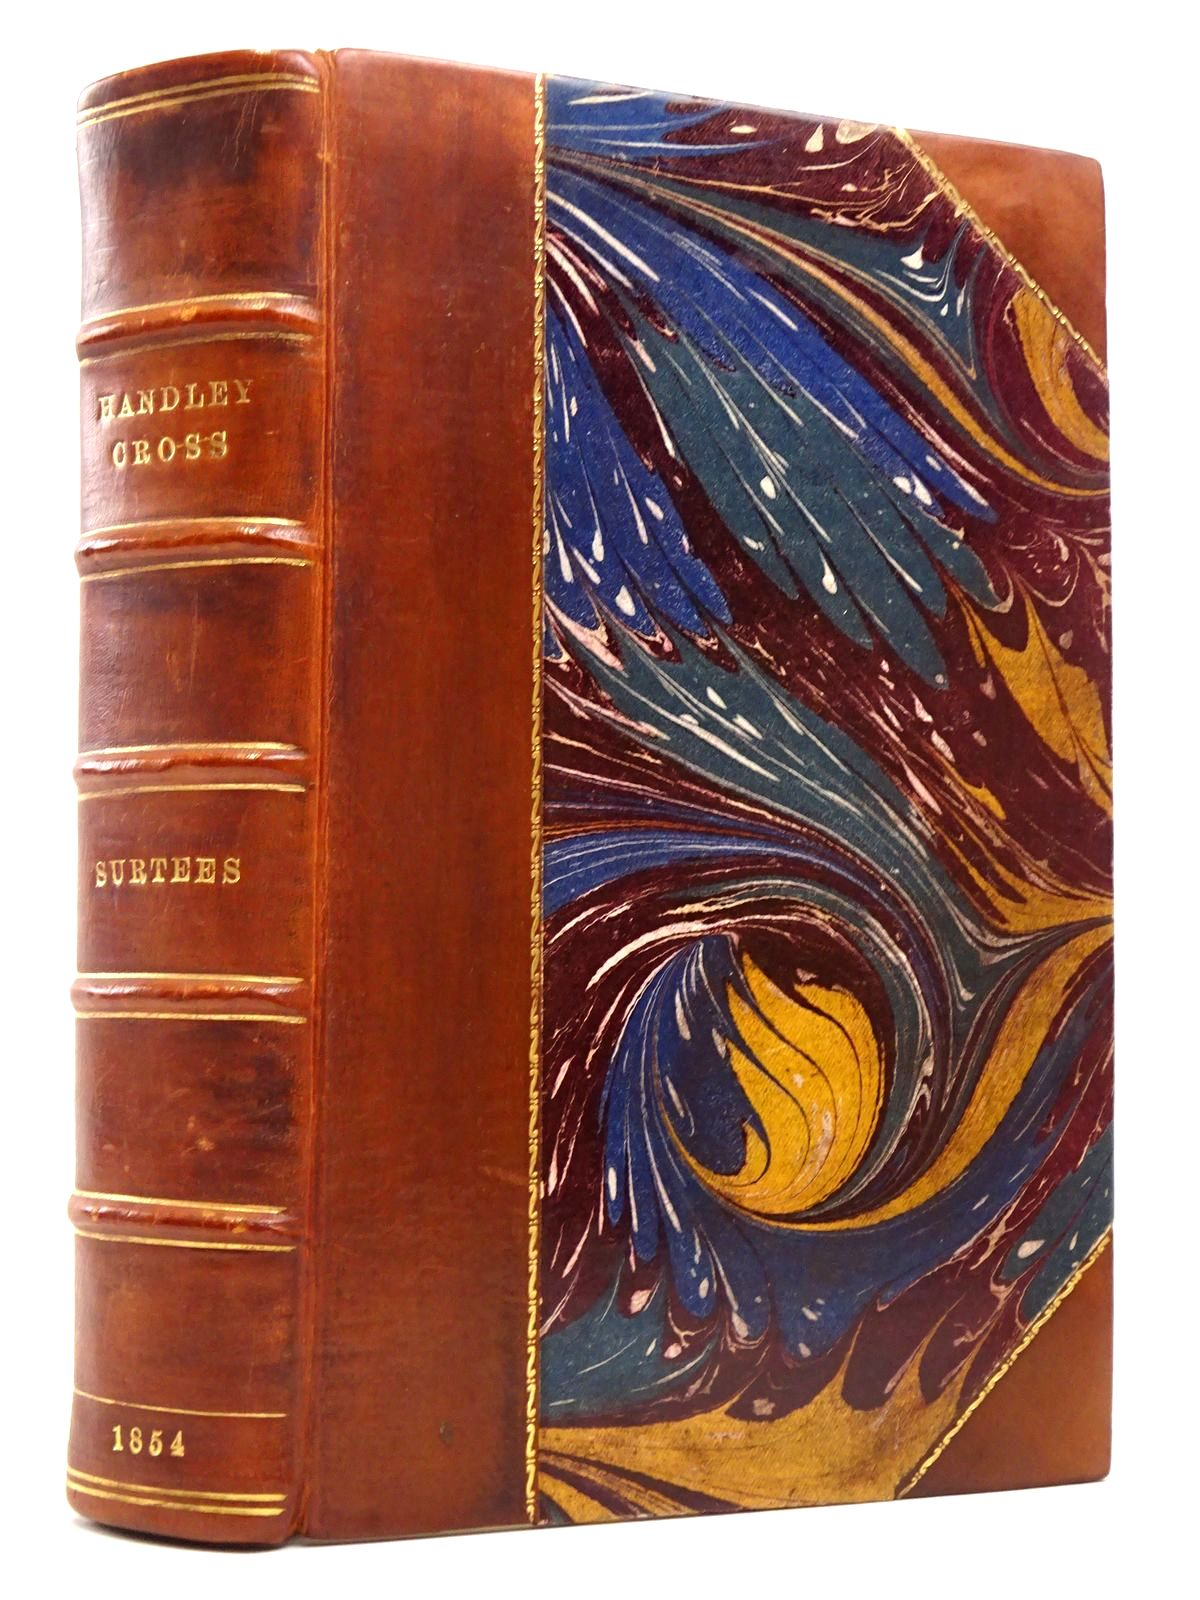 Photo of HANDLEY CROSS OR MR. JORROCKS'S HUNT written by Surtees, R.S. illustrated by Leech, John published by Bradbury, Agnew & Co. Ltd. (STOCK CODE: 1817631)  for sale by Stella & Rose's Books